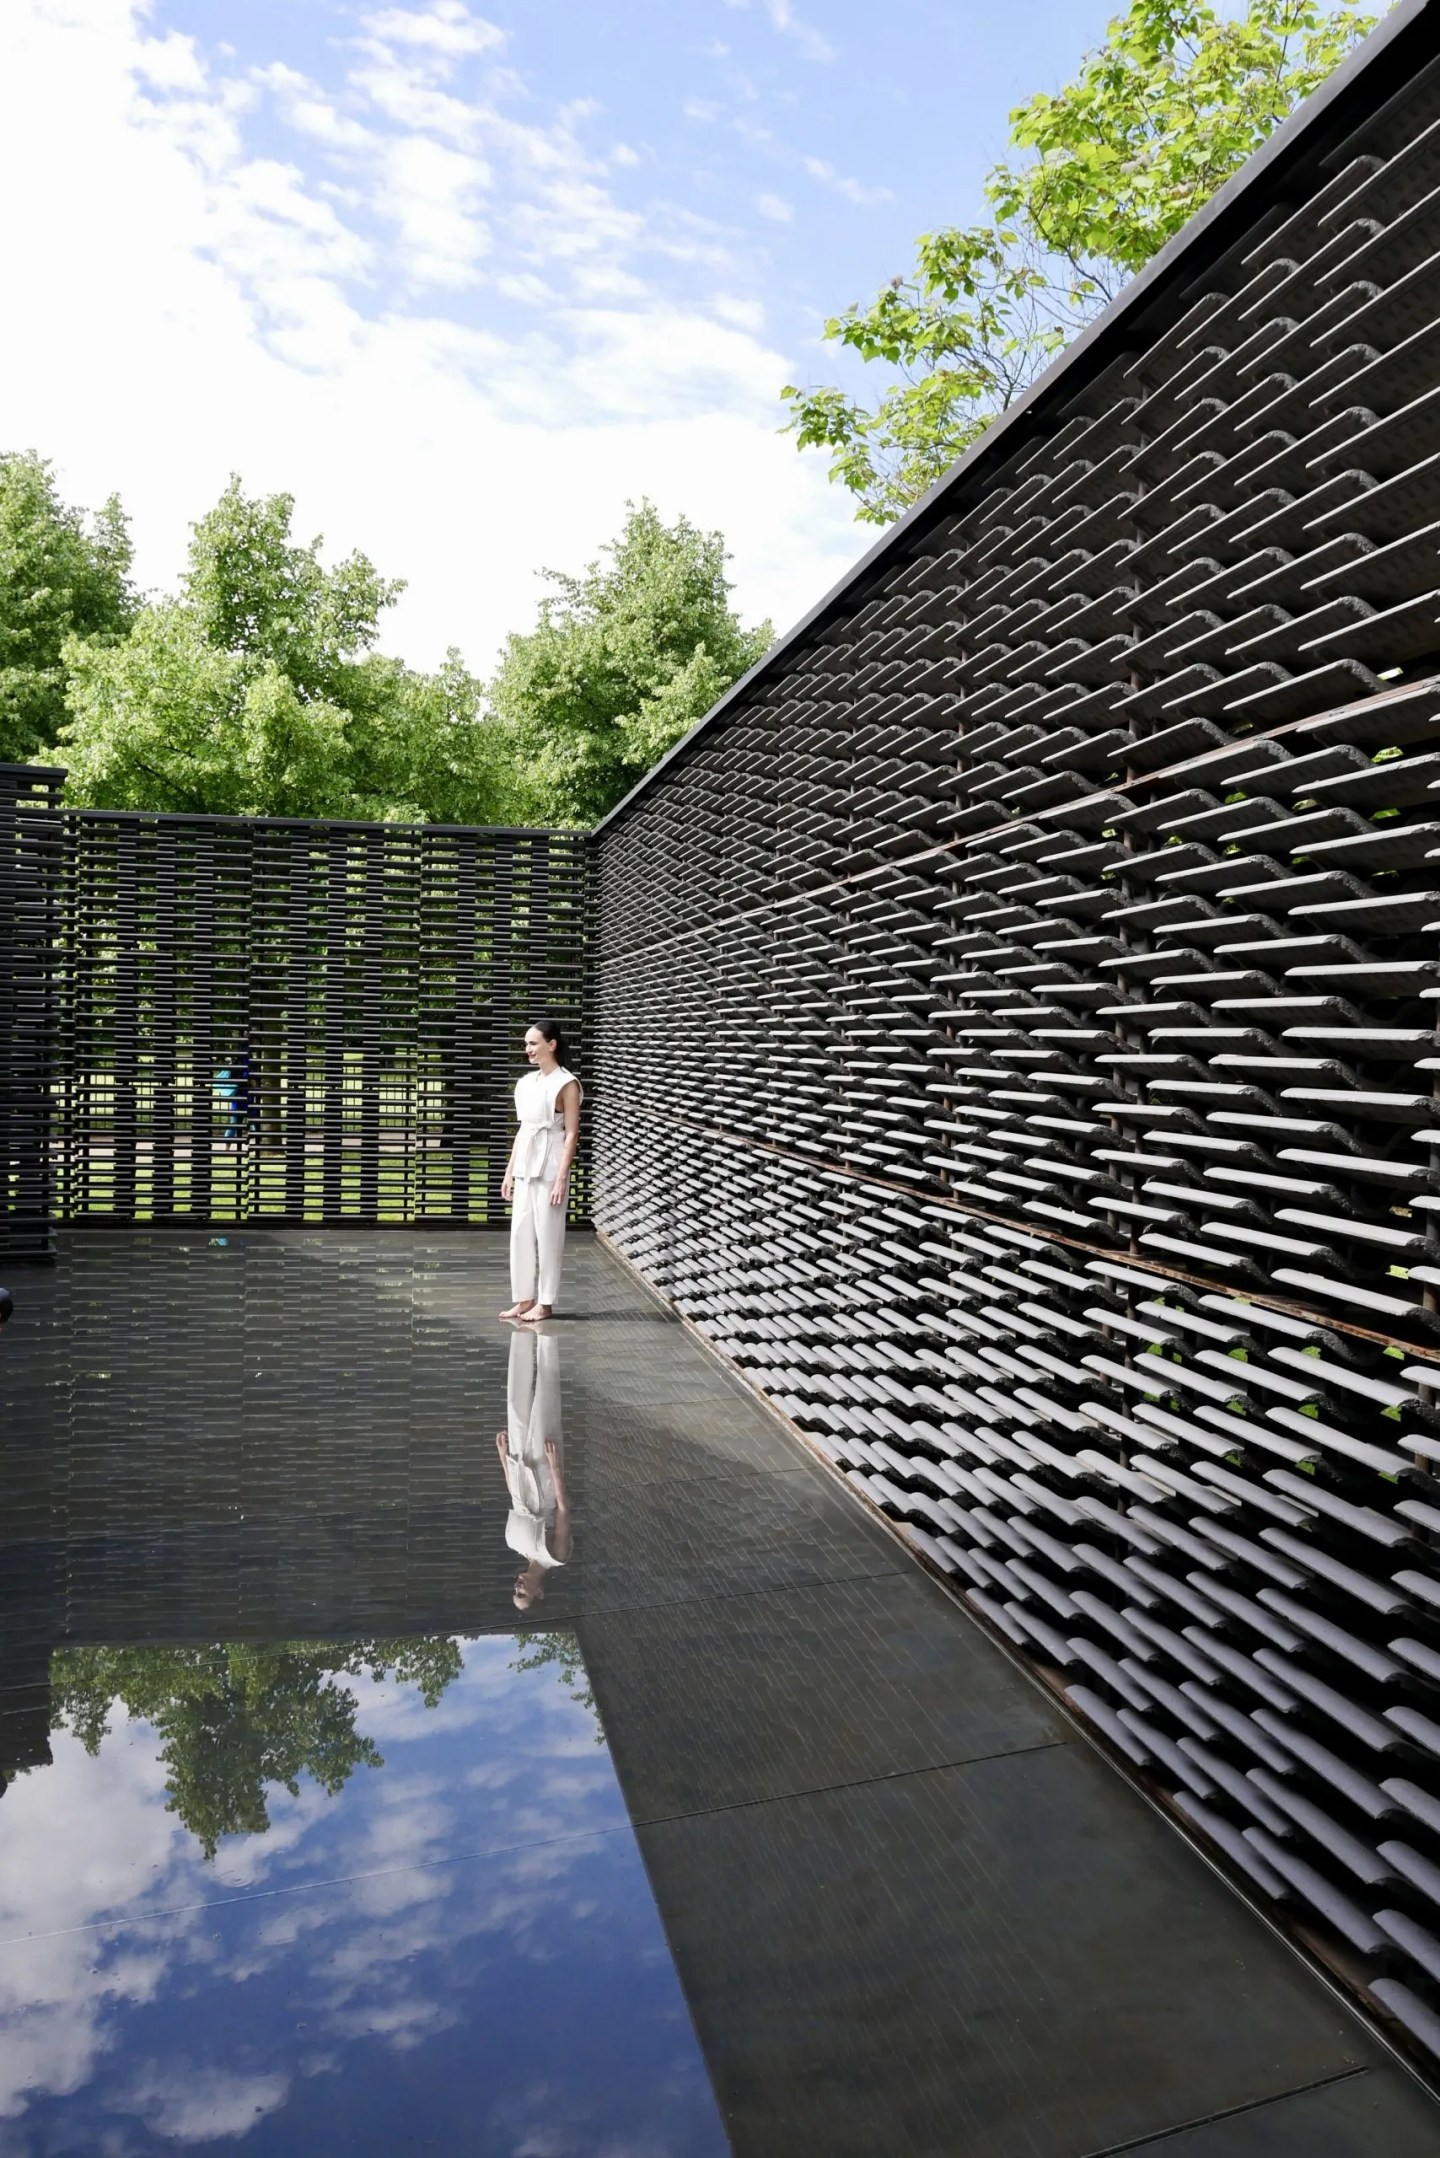 Frida Escobedo Serpentine Pavilion 2018